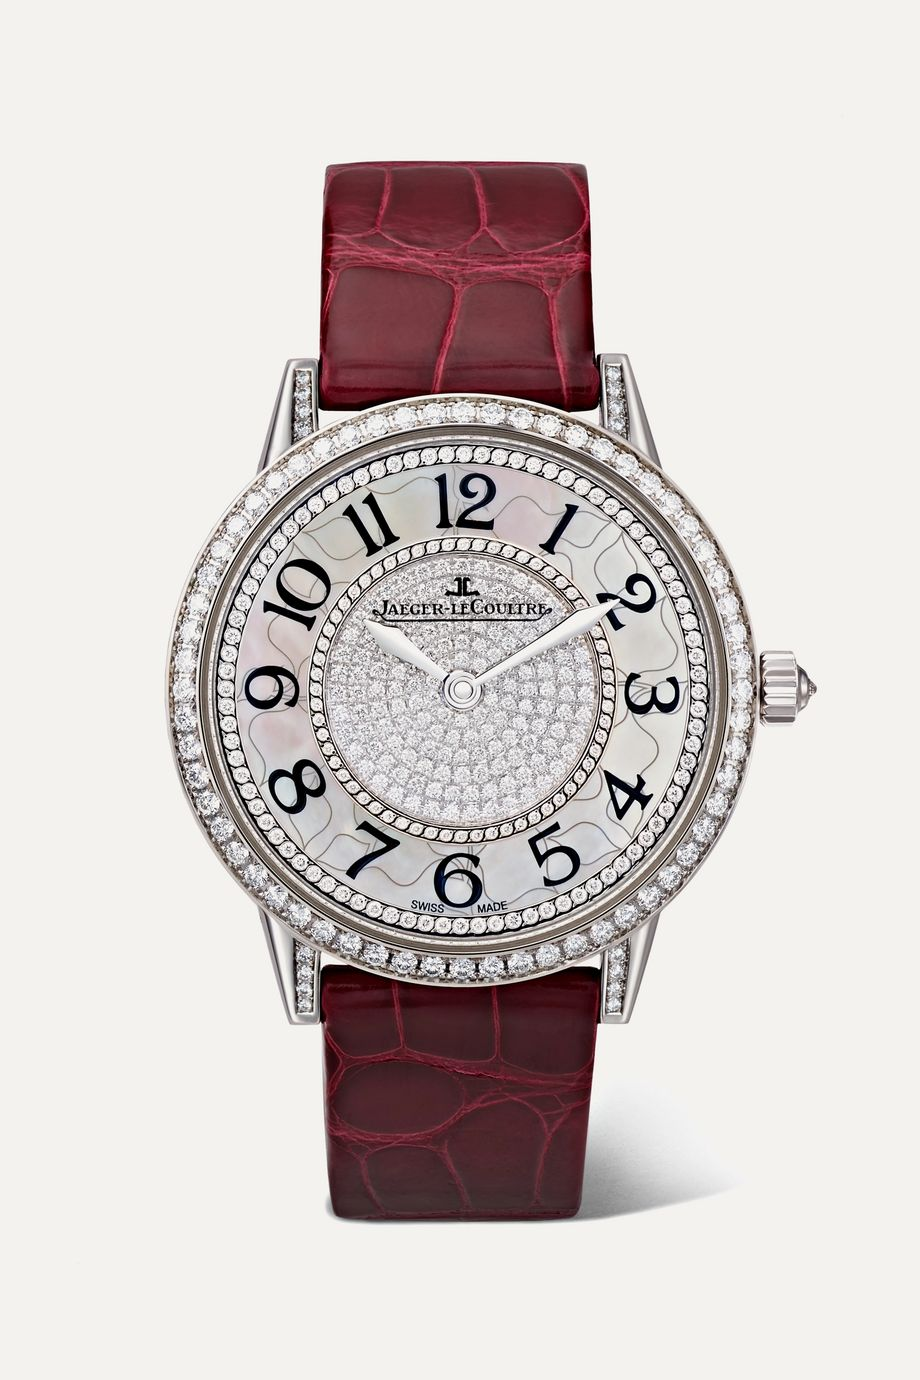 Jaeger-LeCoultre Rendez-Vous Night & Day Ivy 34mm 18-karat white gold, alligator and diamond watch